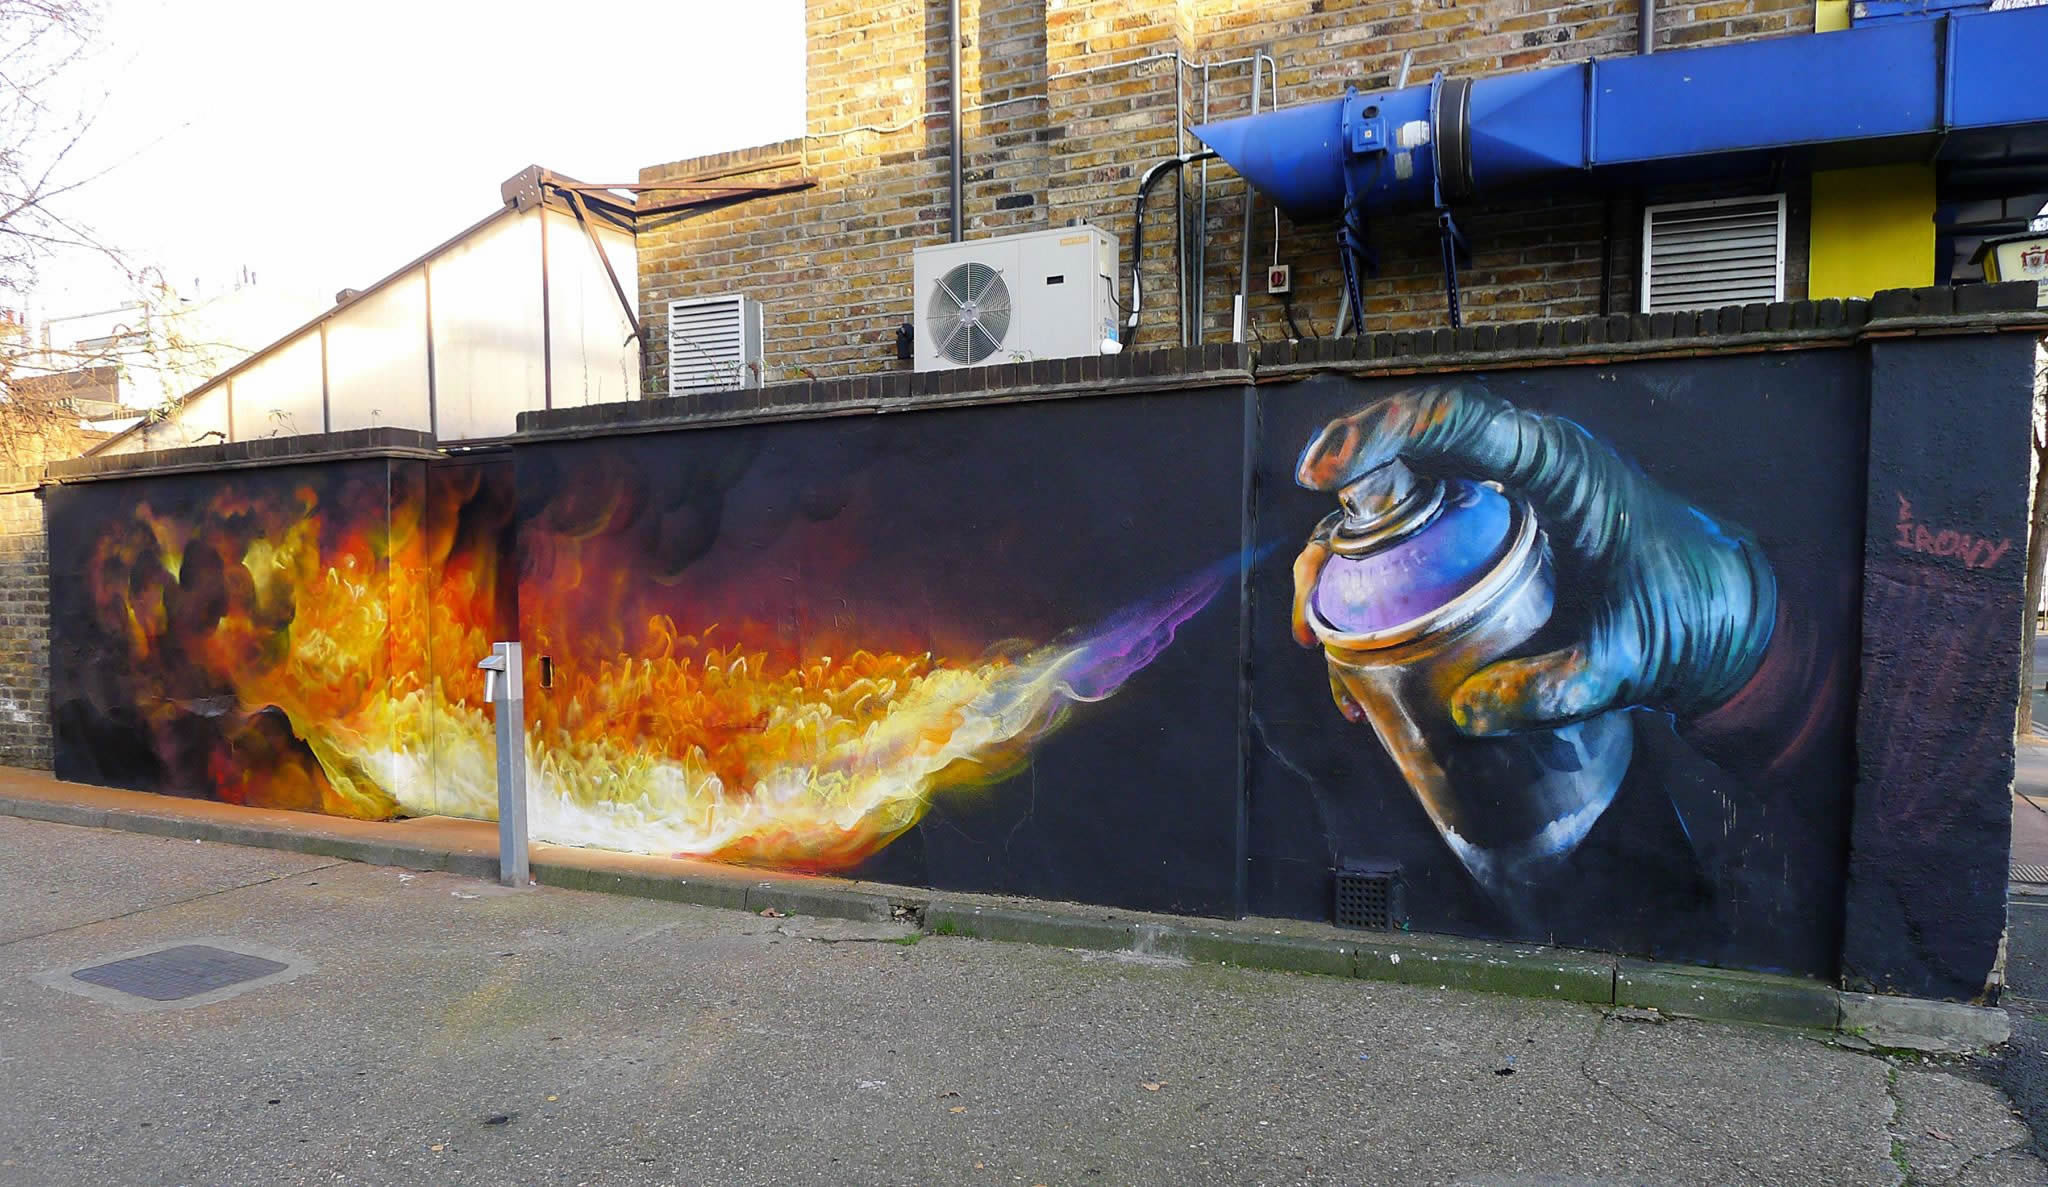 Irony's Graffiti Burns Up London